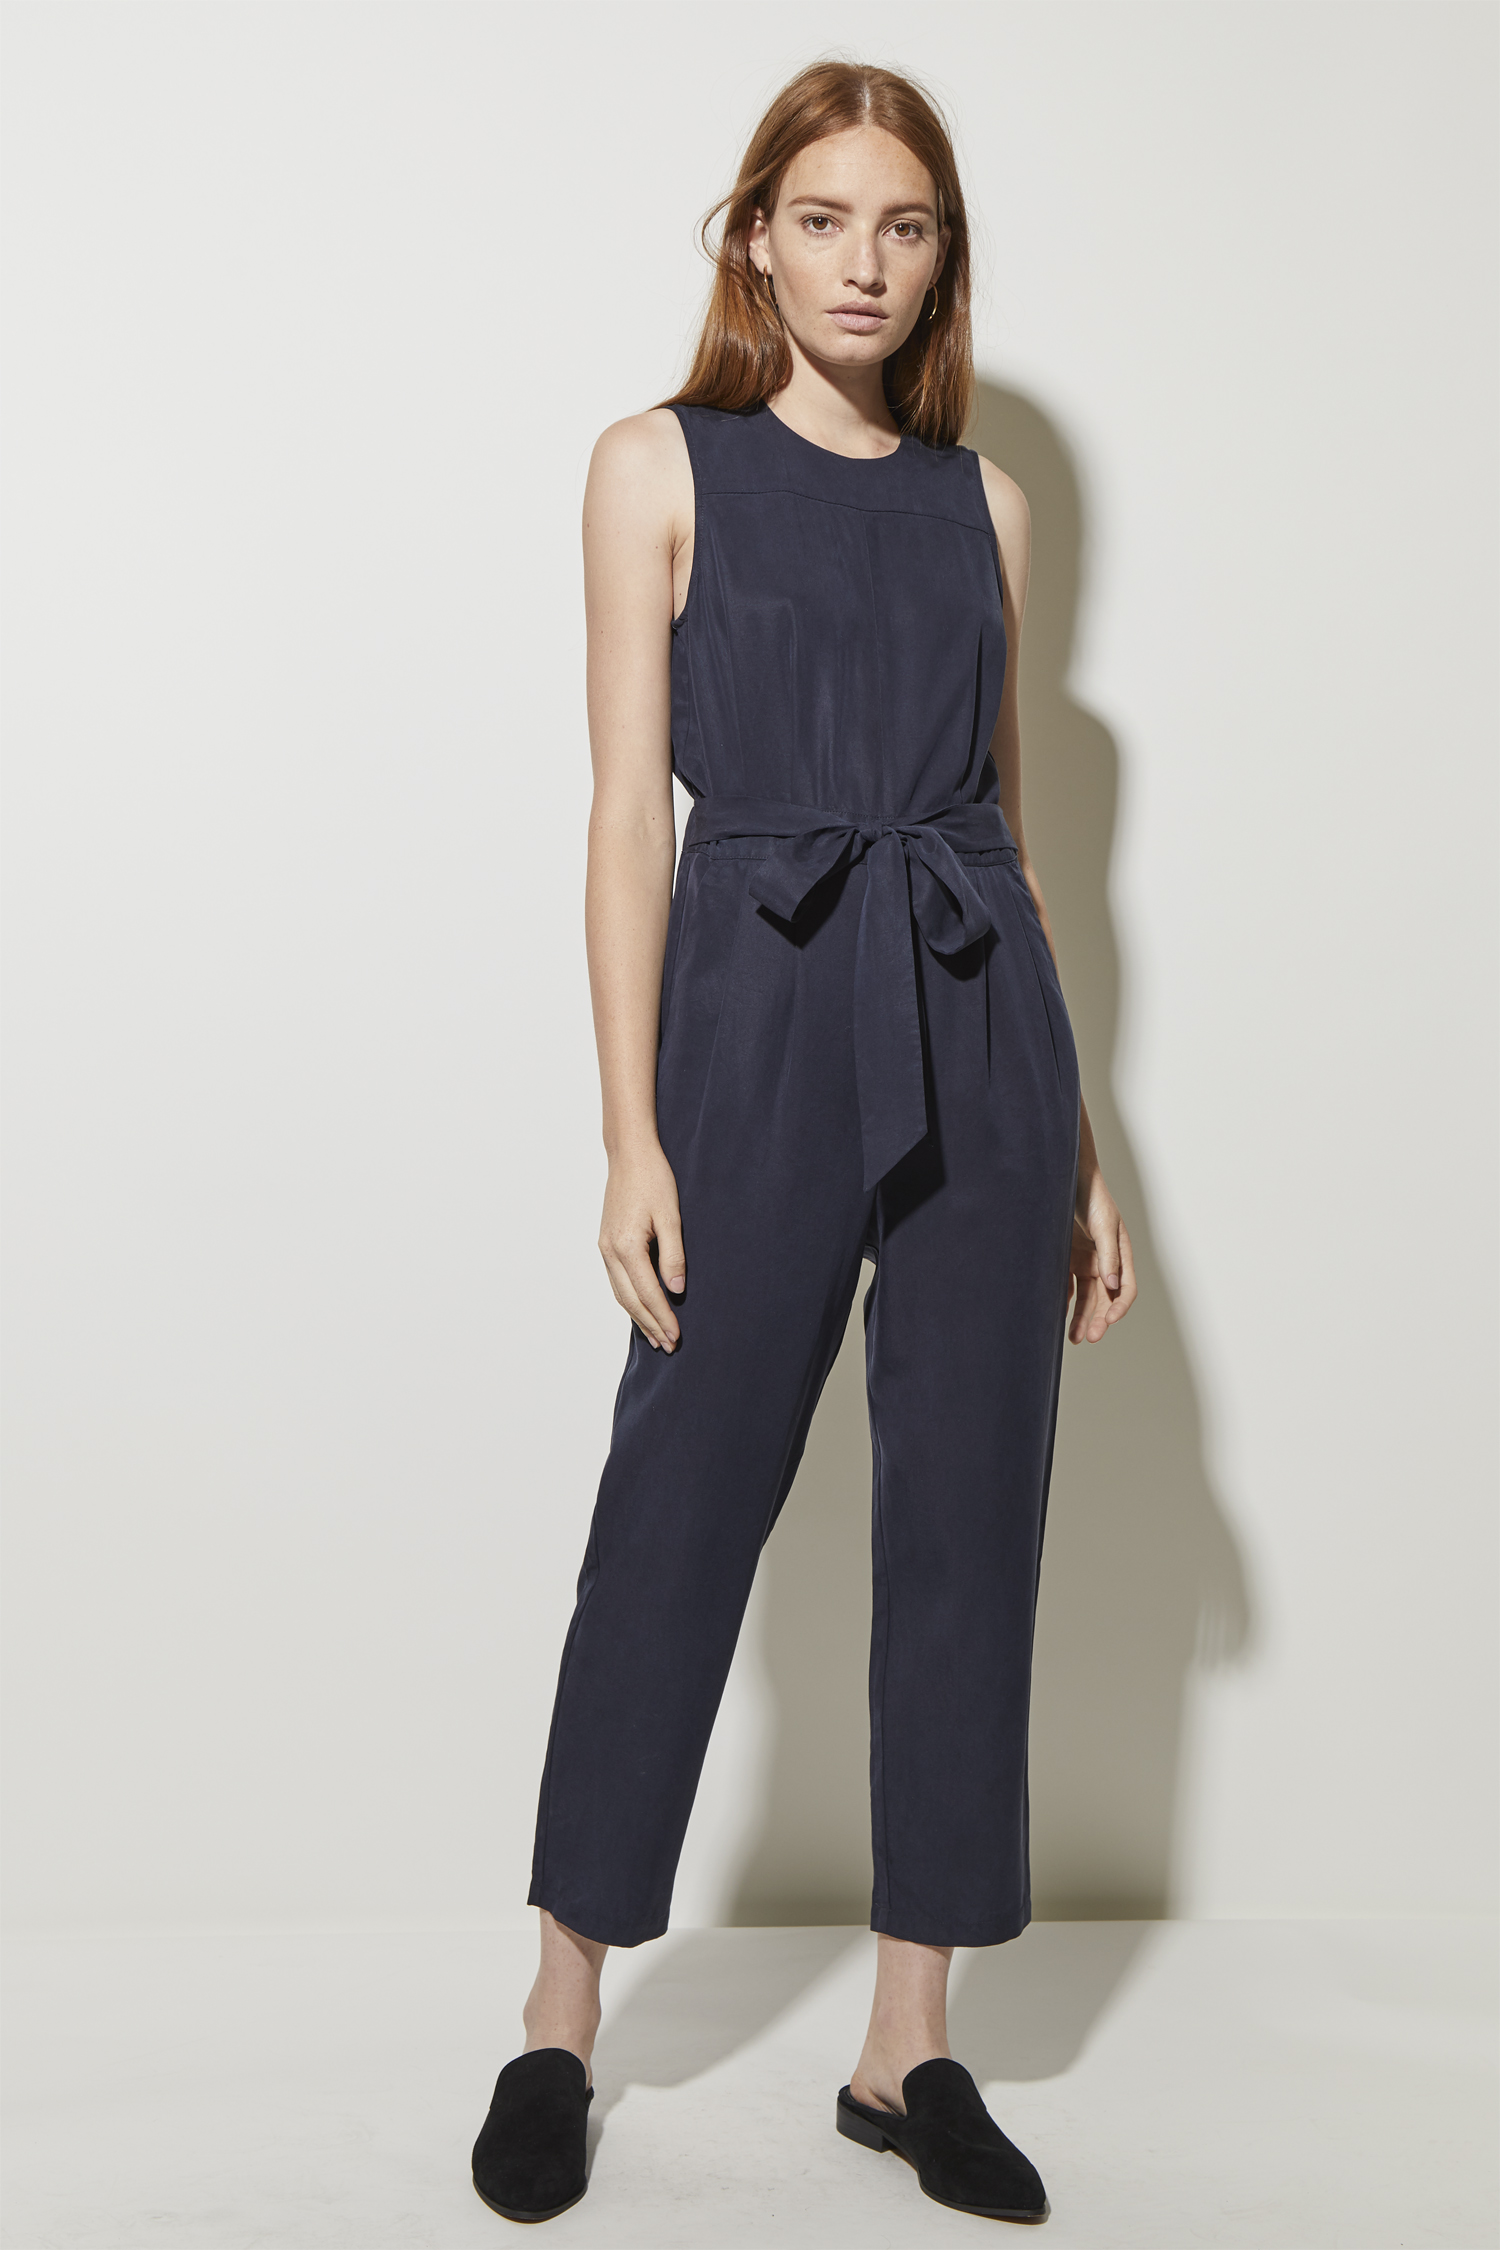 women's casual jumpsuits